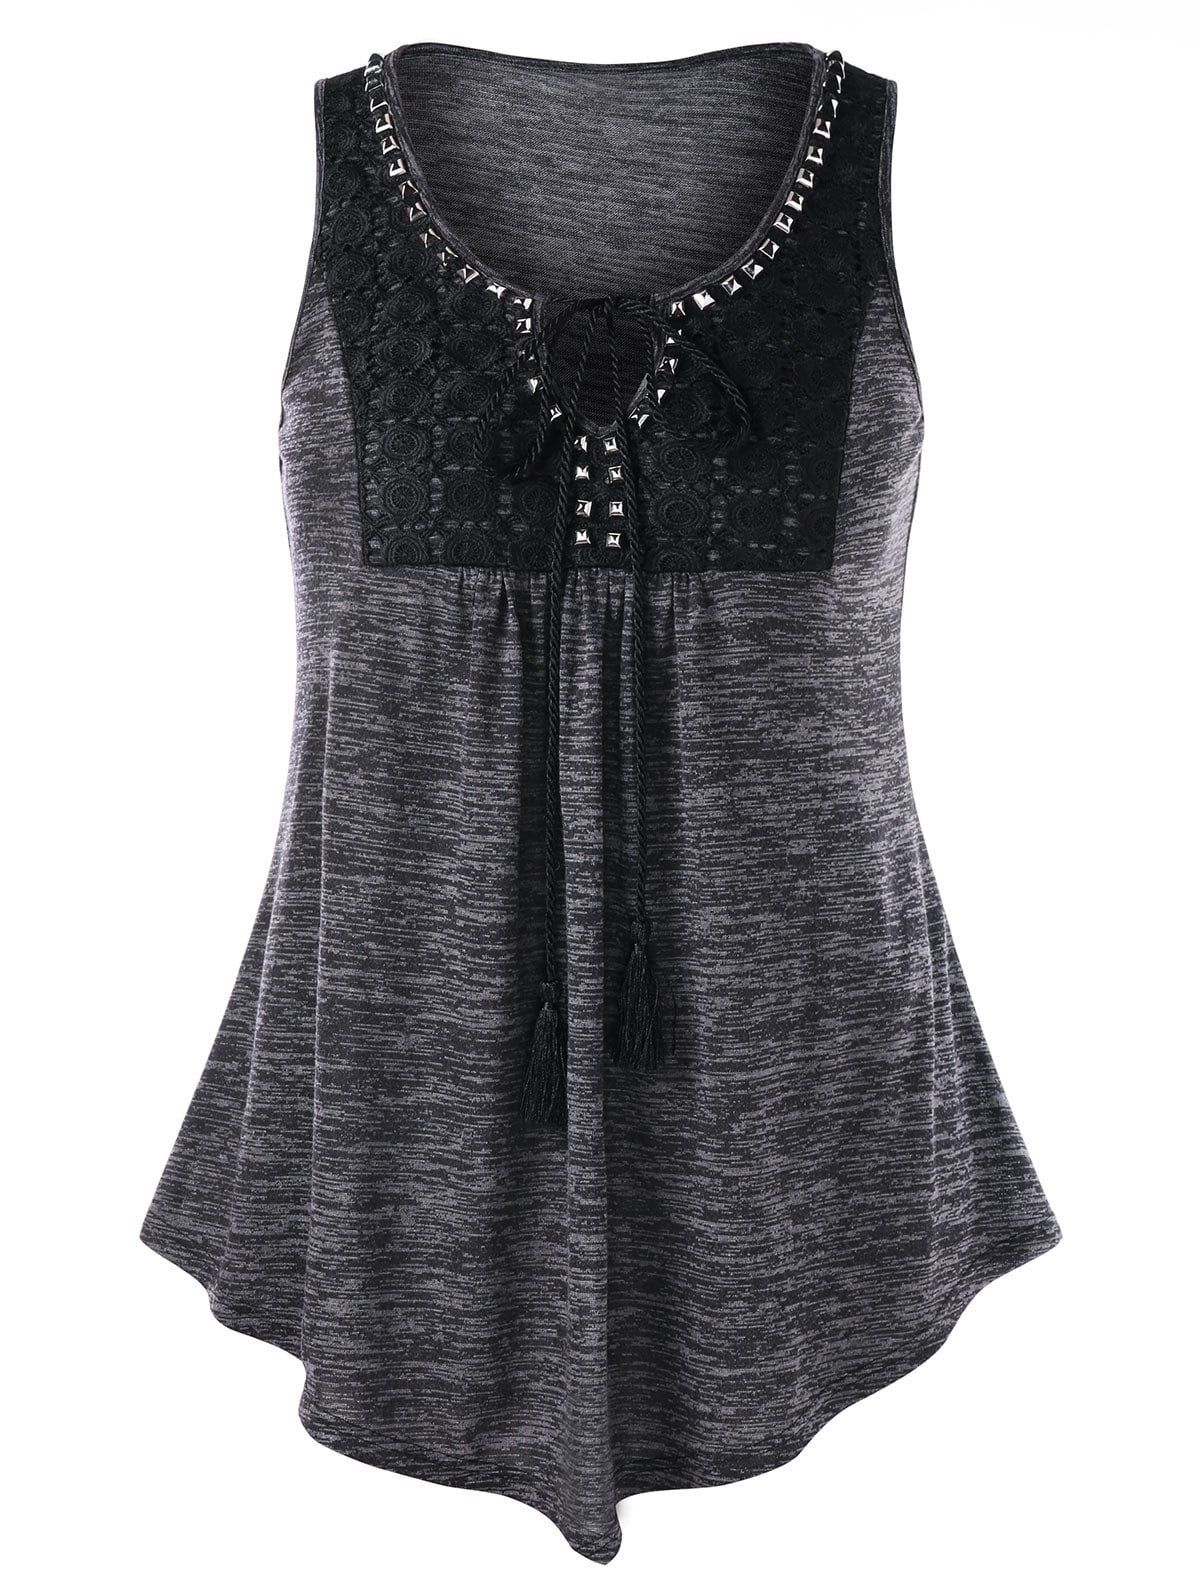 Plus Size Rivet Embellished Marled Tank Top Cheap tank